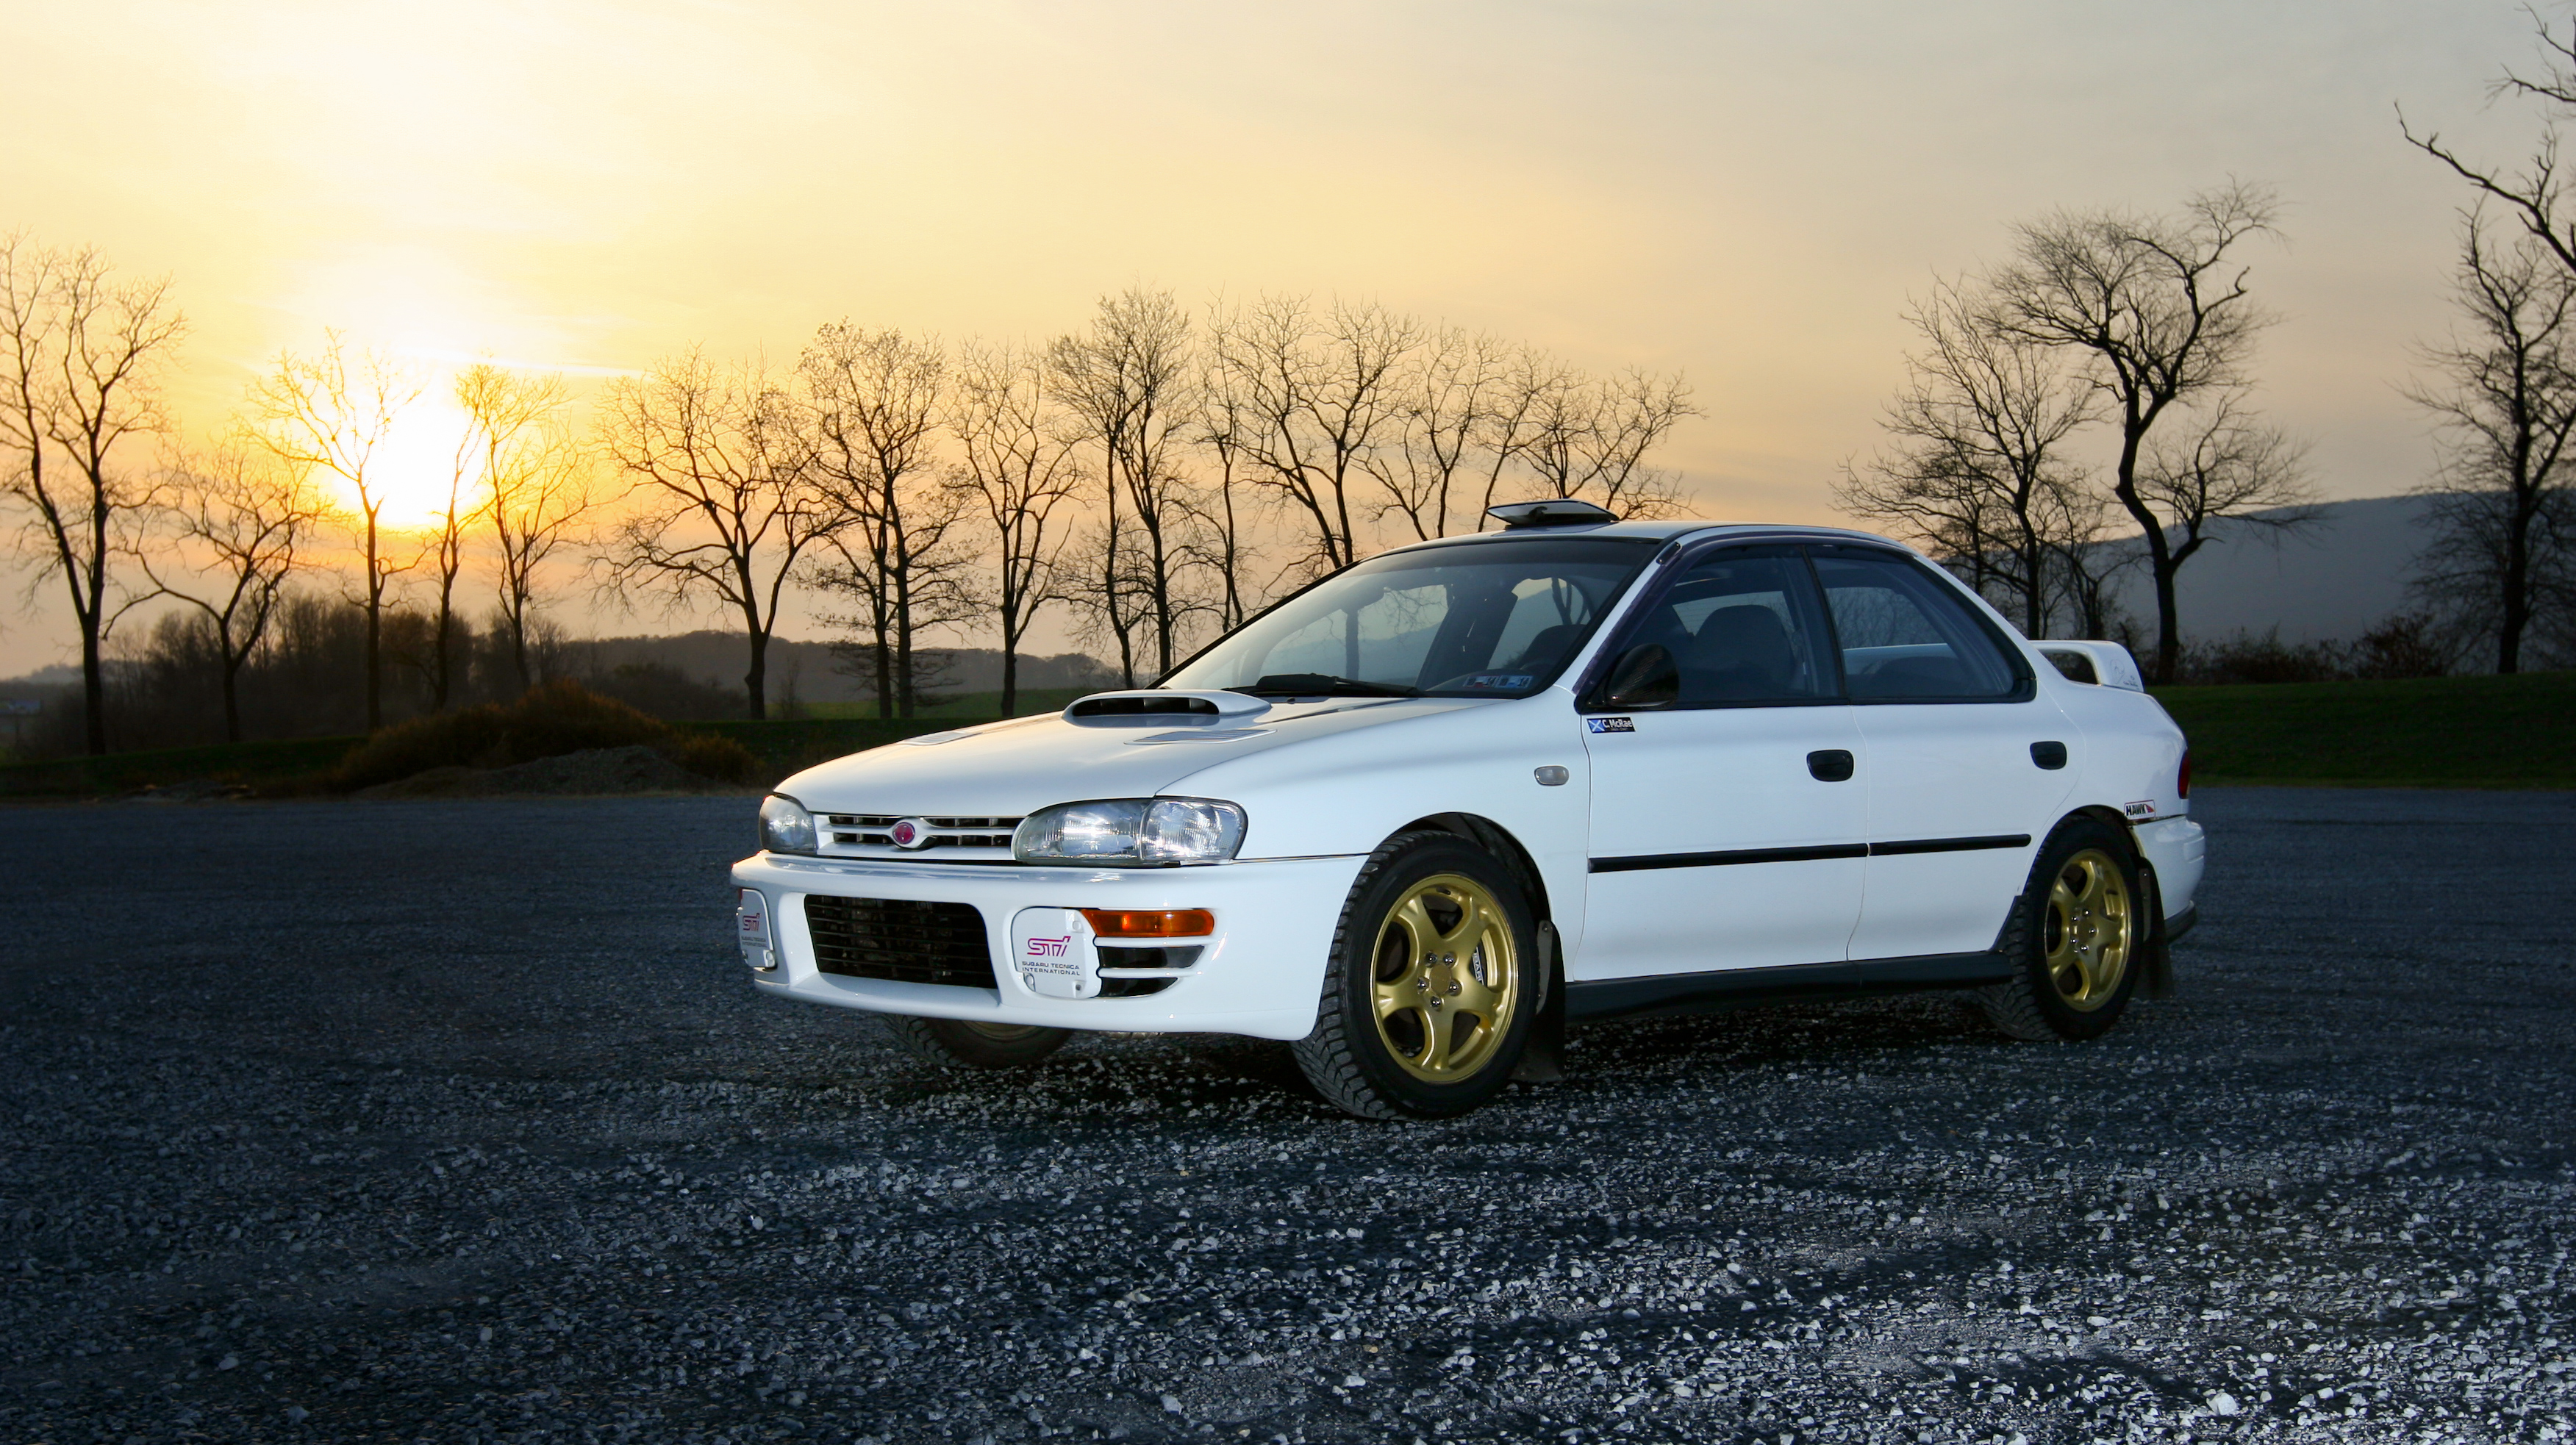 t3hWIT's Impreza L Buildup - Making things right. Right-hand drive that is.-ms_witmer093.jpg